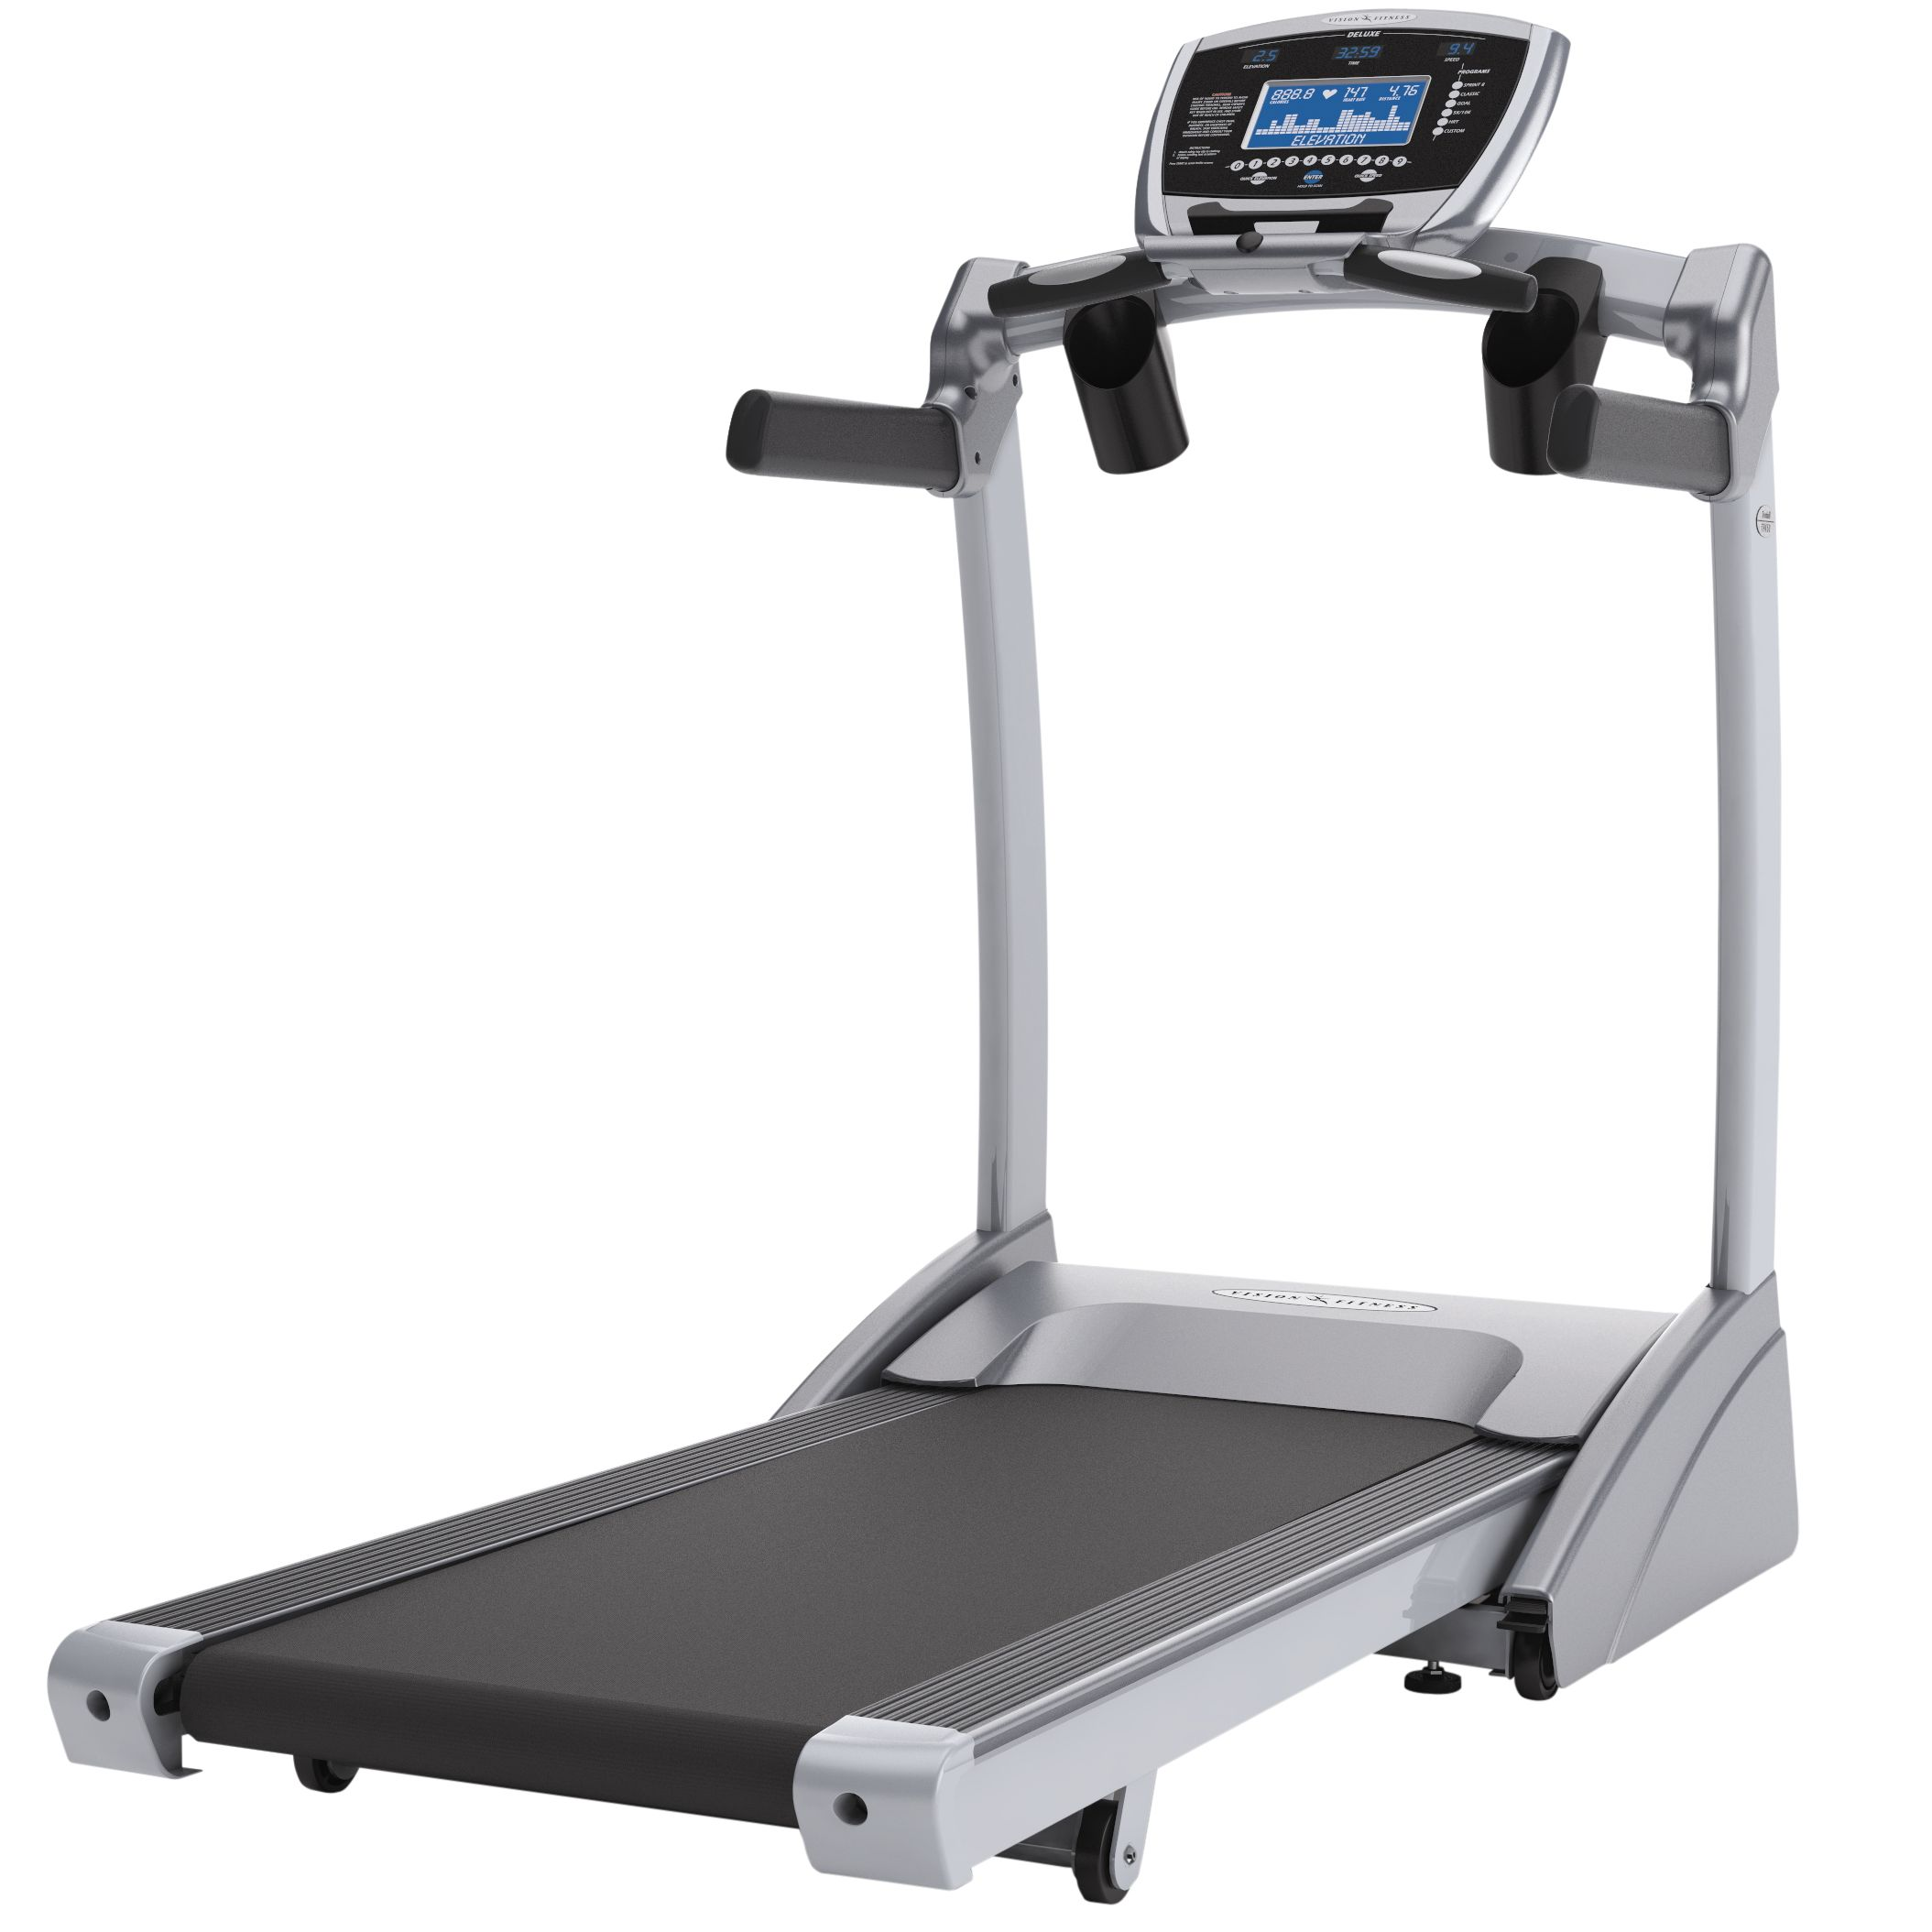 T9550HRT Folding Treadmill with